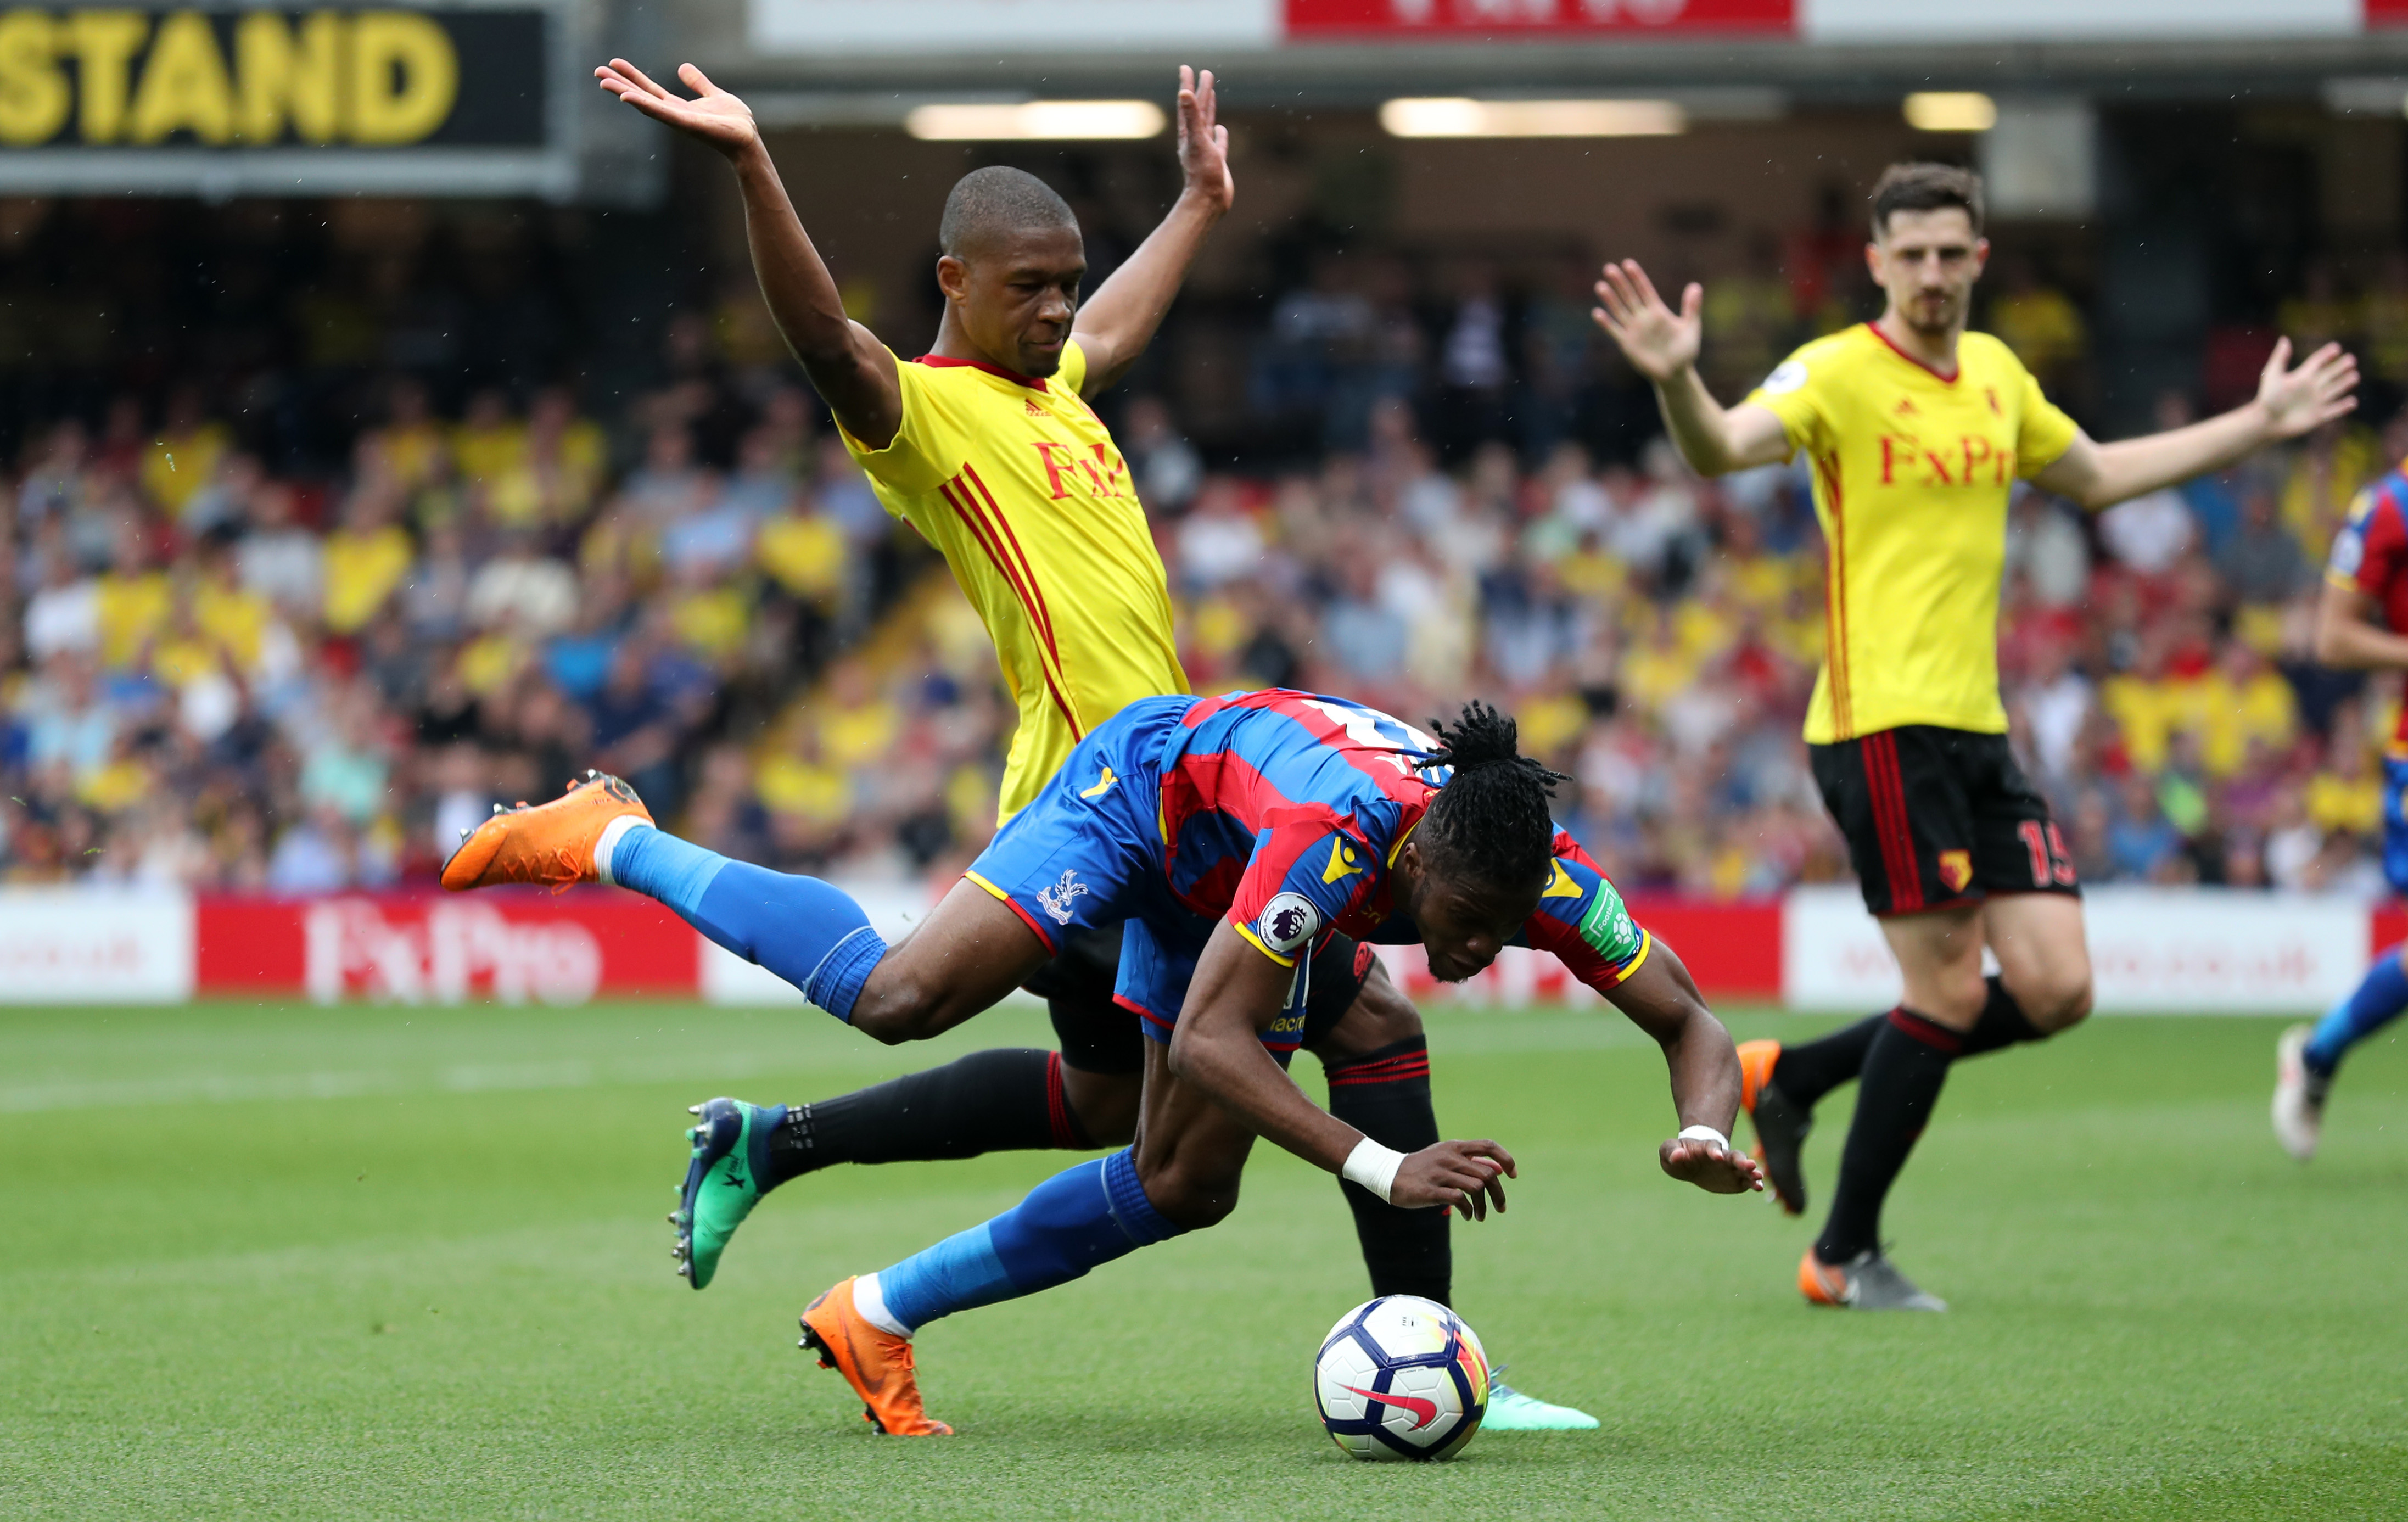 Palace's Zaha complains of agenda over diving